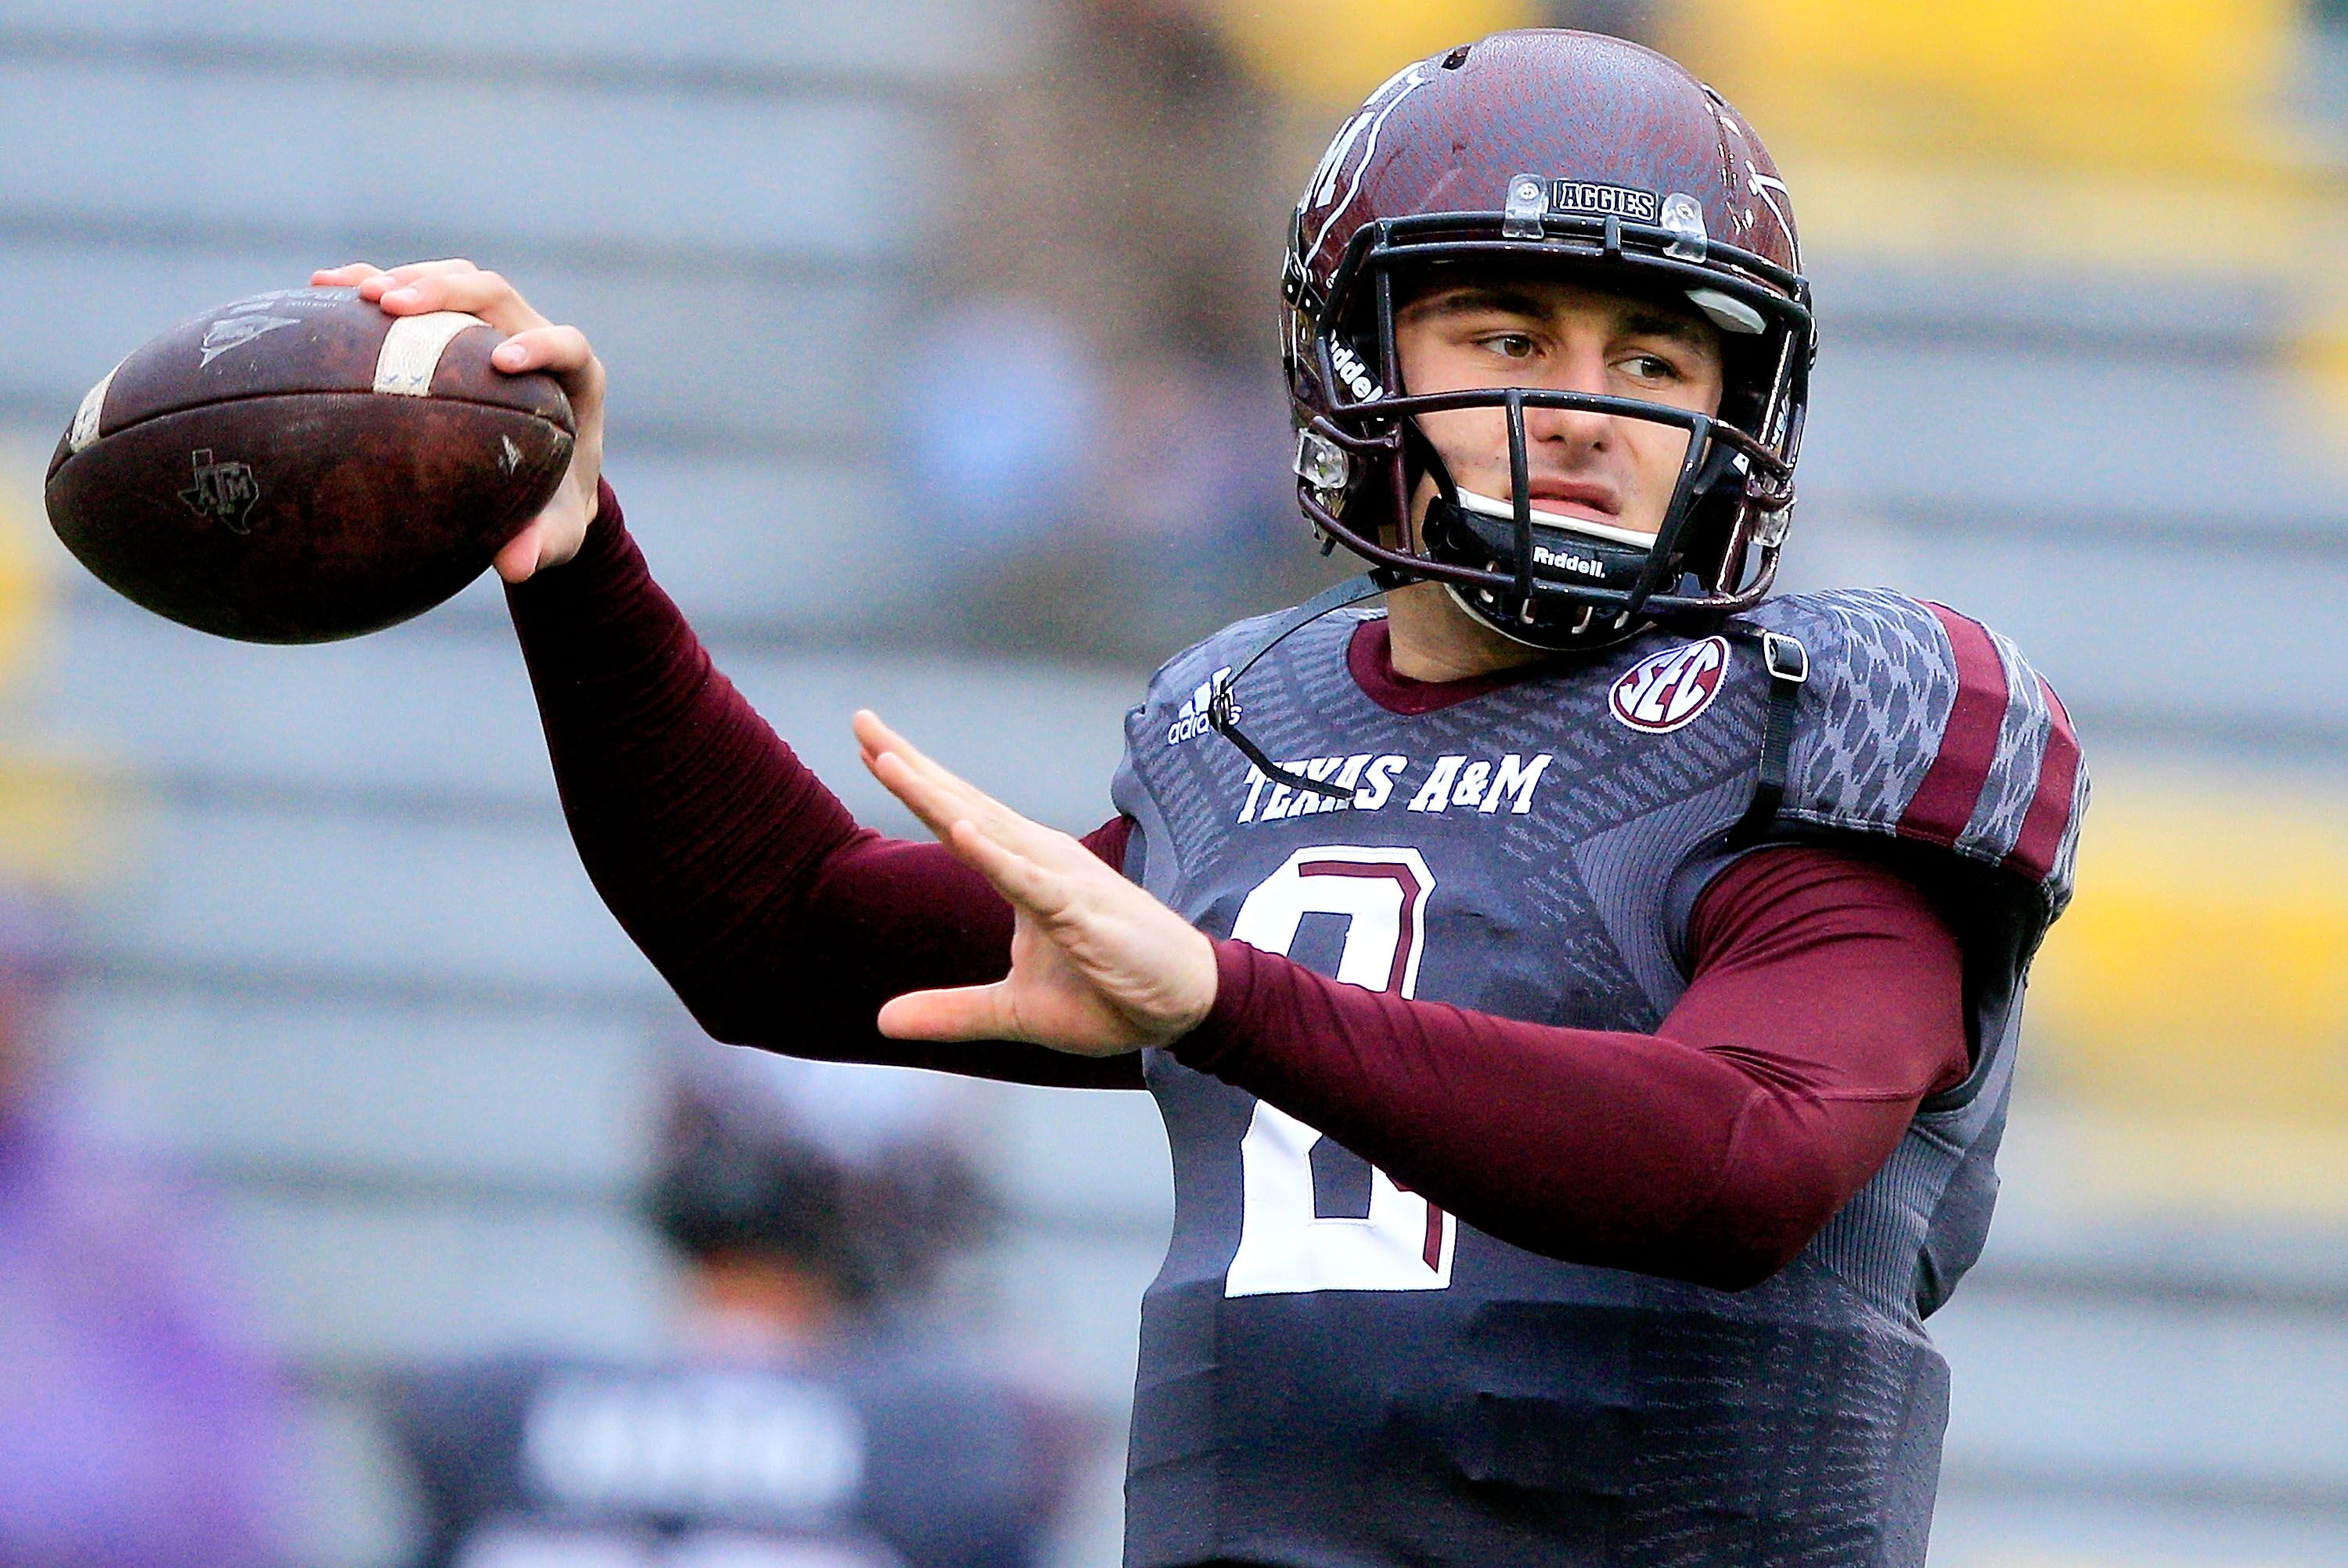 Johnny Manziel to AAF makes way too much sense 225f46d86